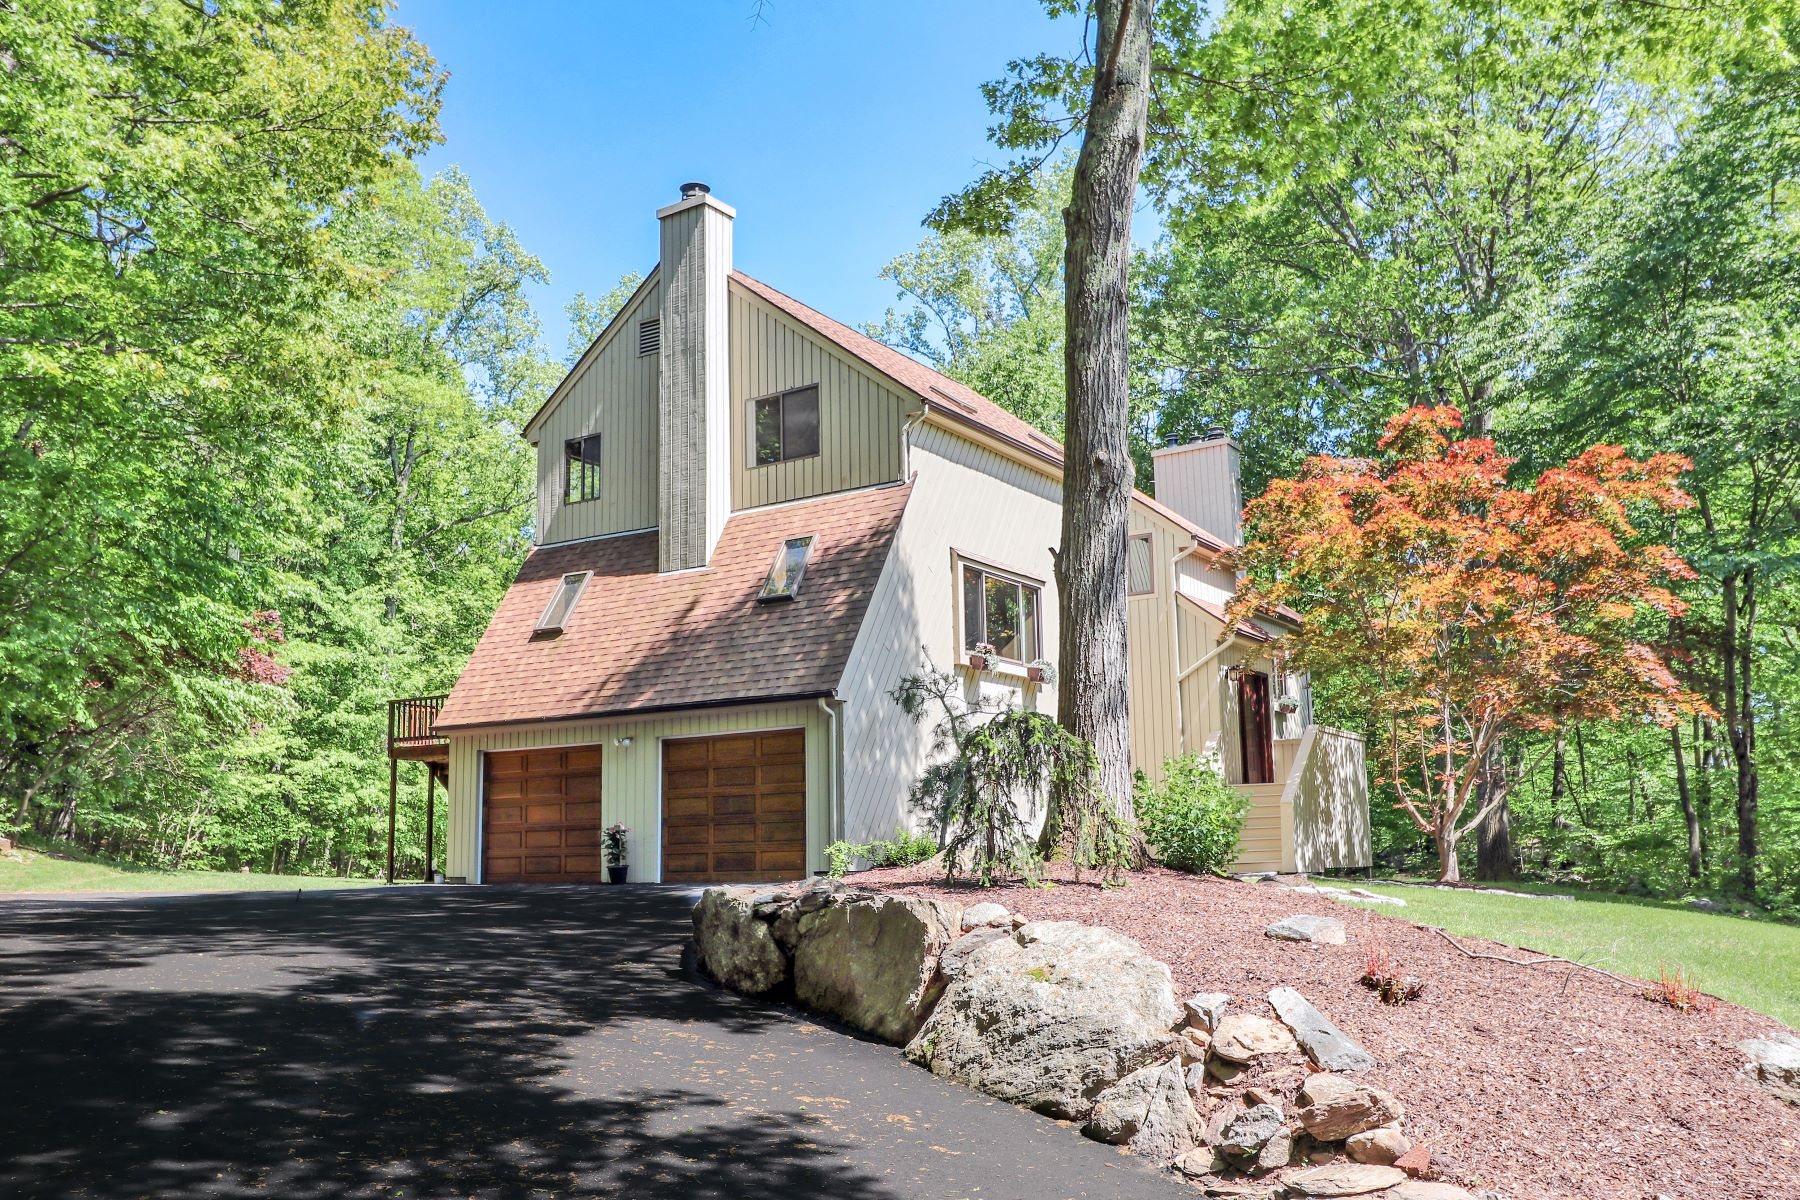 Single Family Home for Sale at 780 North Park Avenue 780 North Park Avenue Easton, Connecticut 06612 United States